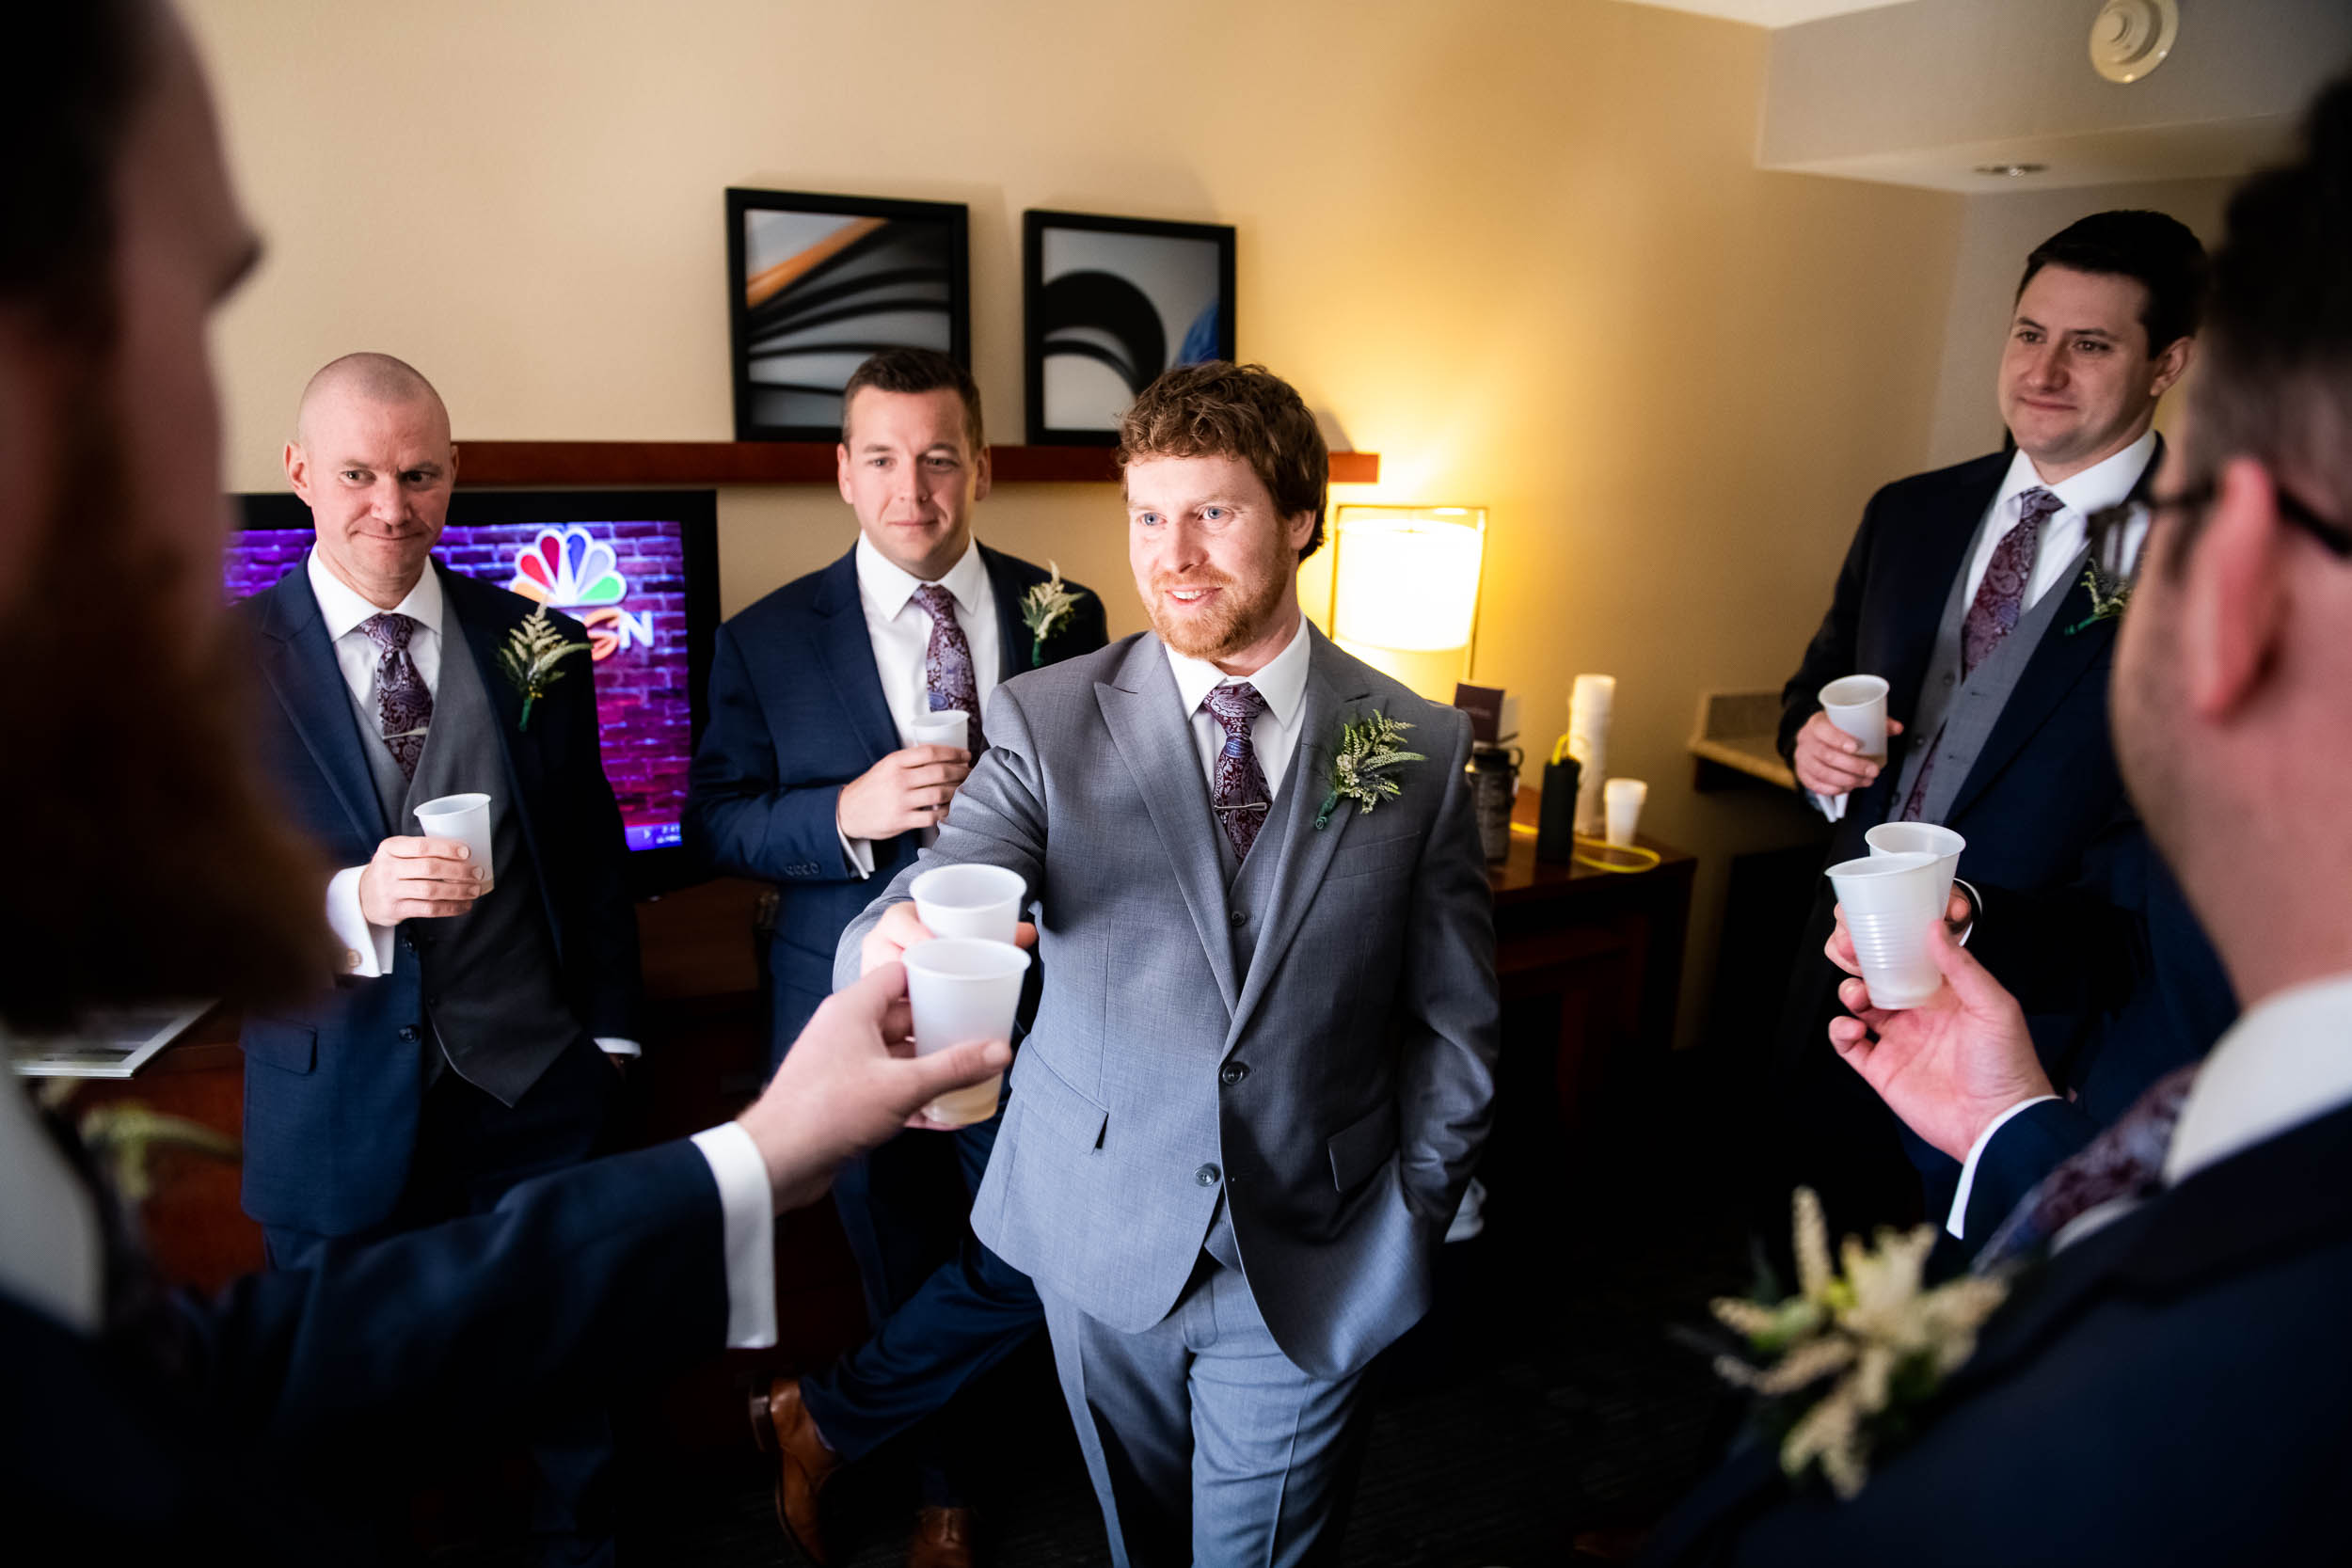 Groomsmen Toast: Modern industrial Chicago wedding inside Prairie Street Brewhouse captured by J. Brown Photography. Find more wedding ideas at jbrownphotography.com!